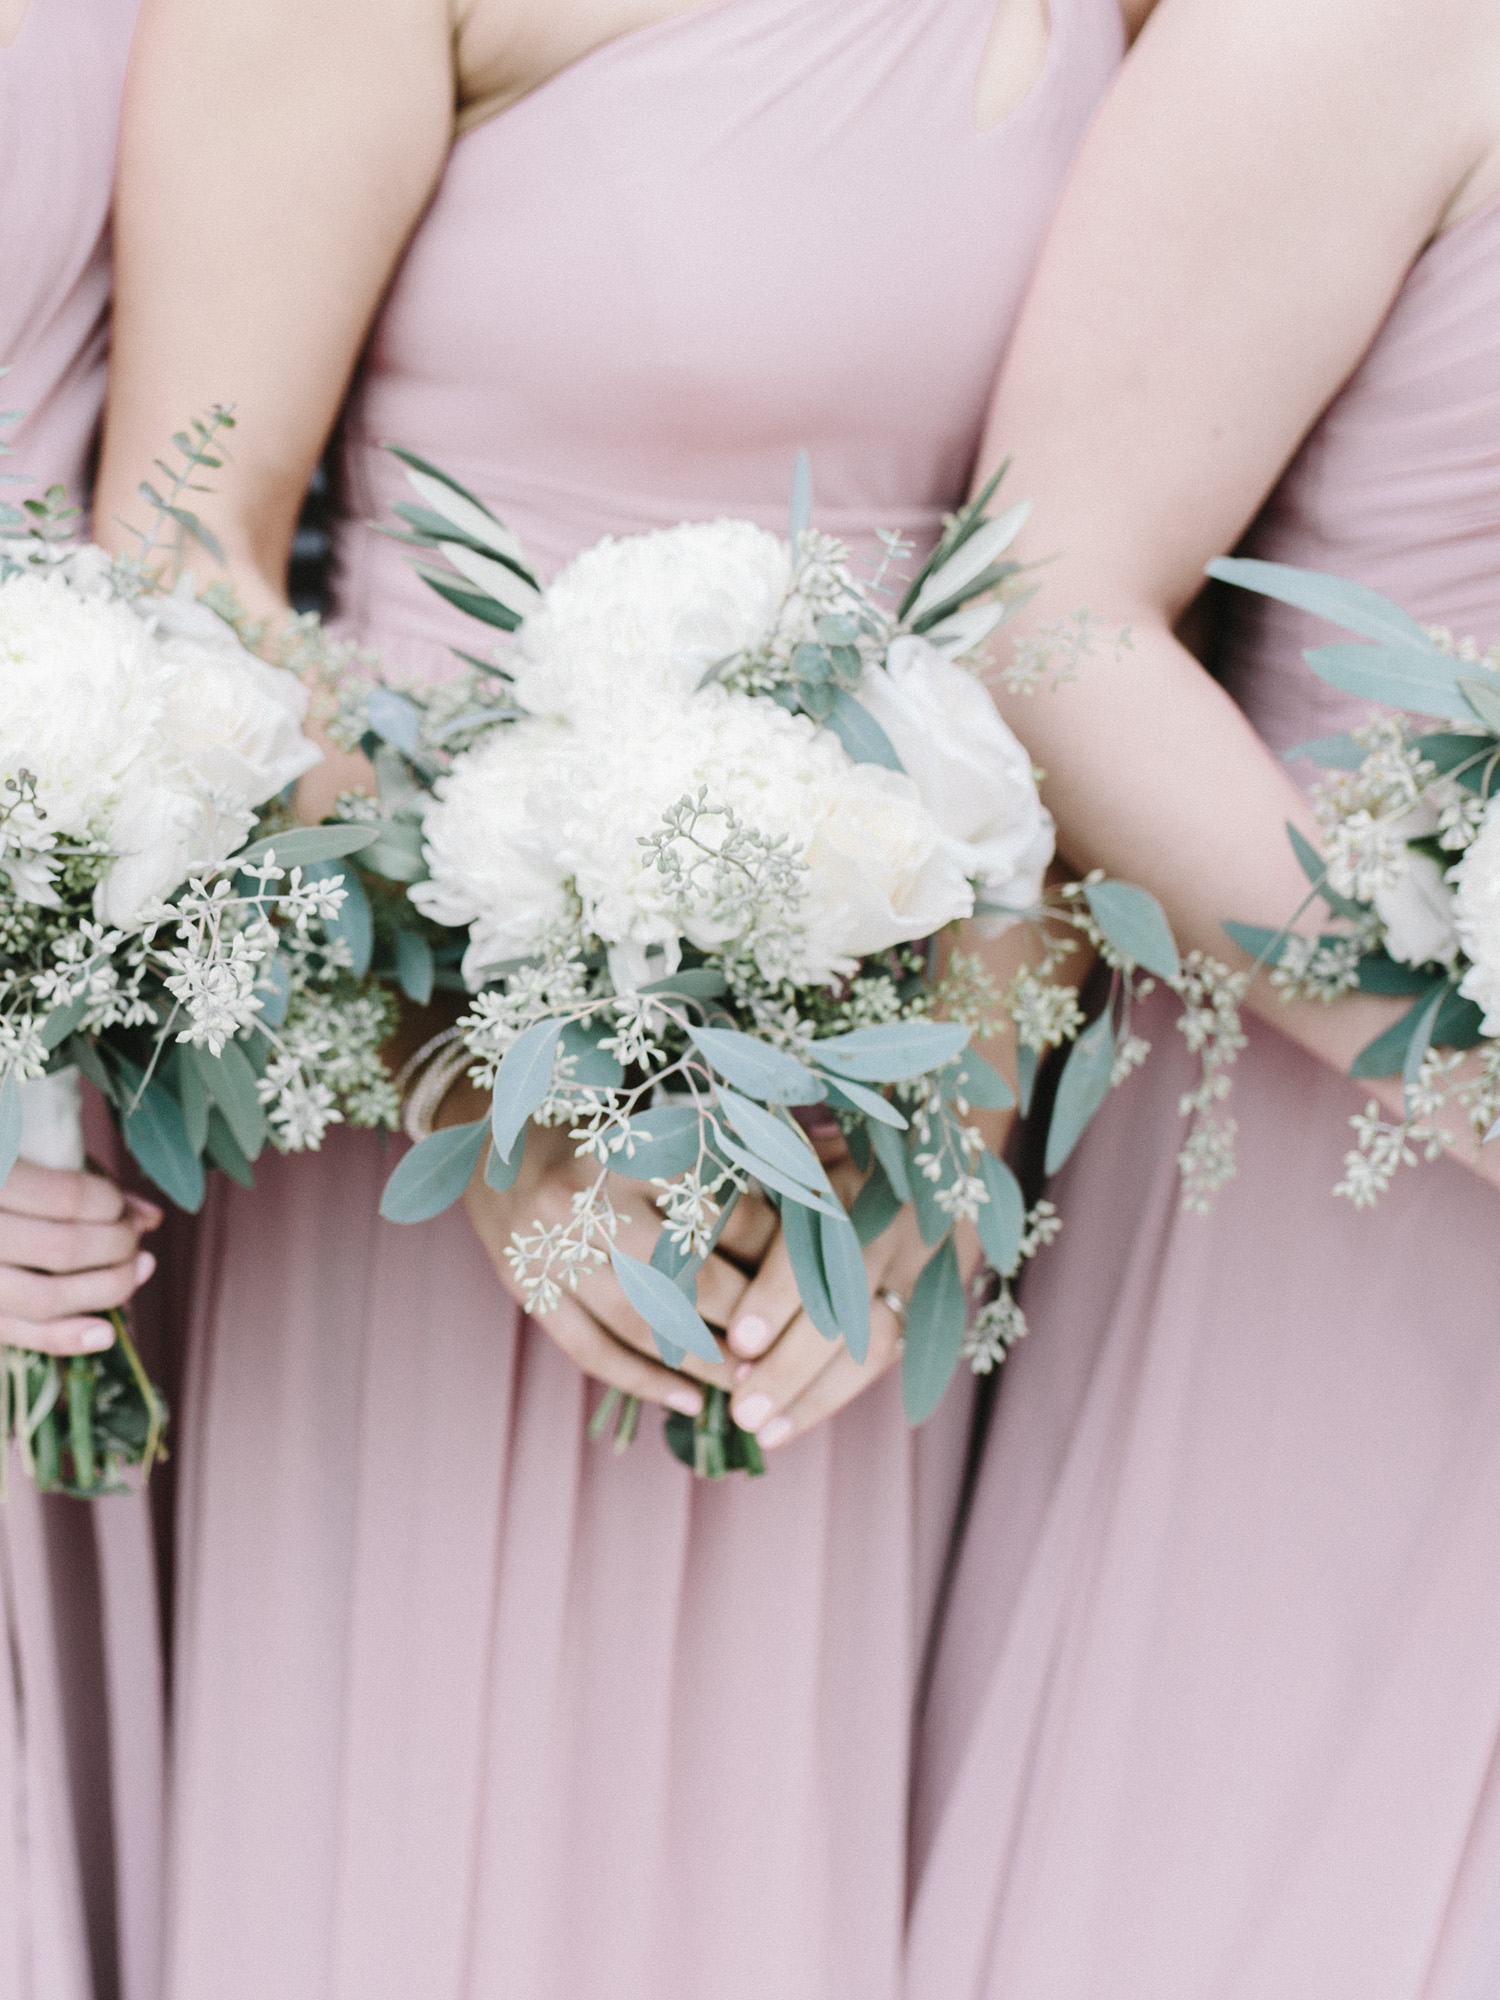 Bridesmaids in romantic blush dresses hold bouquets of white flowers and eucalyptus by film wedding photographer Christina Harrison